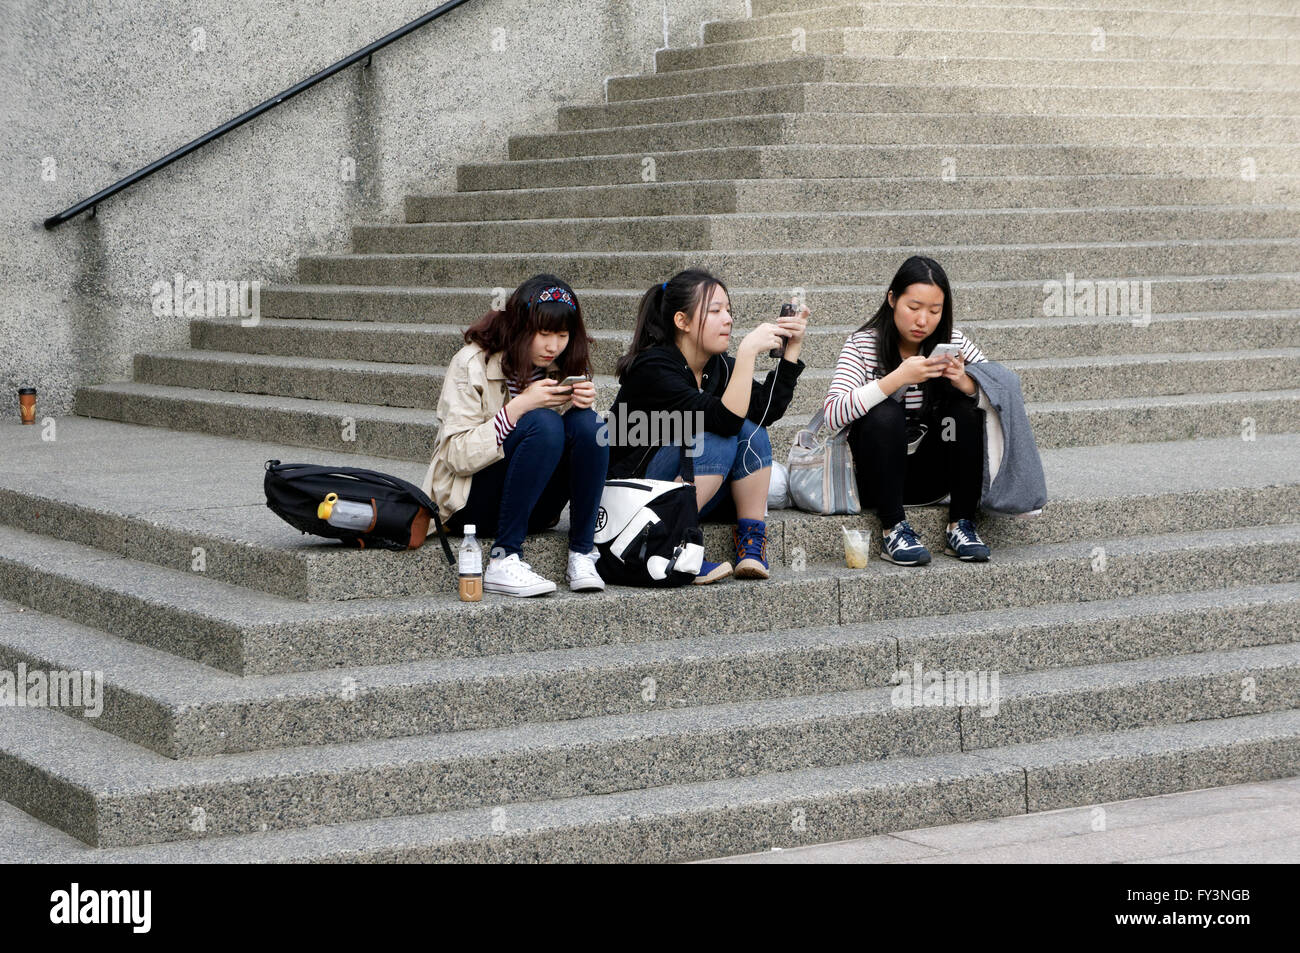 Three young Asian women sitting on concrete steps using their smart phones, Vancouver, BC, Canada - Stock Image